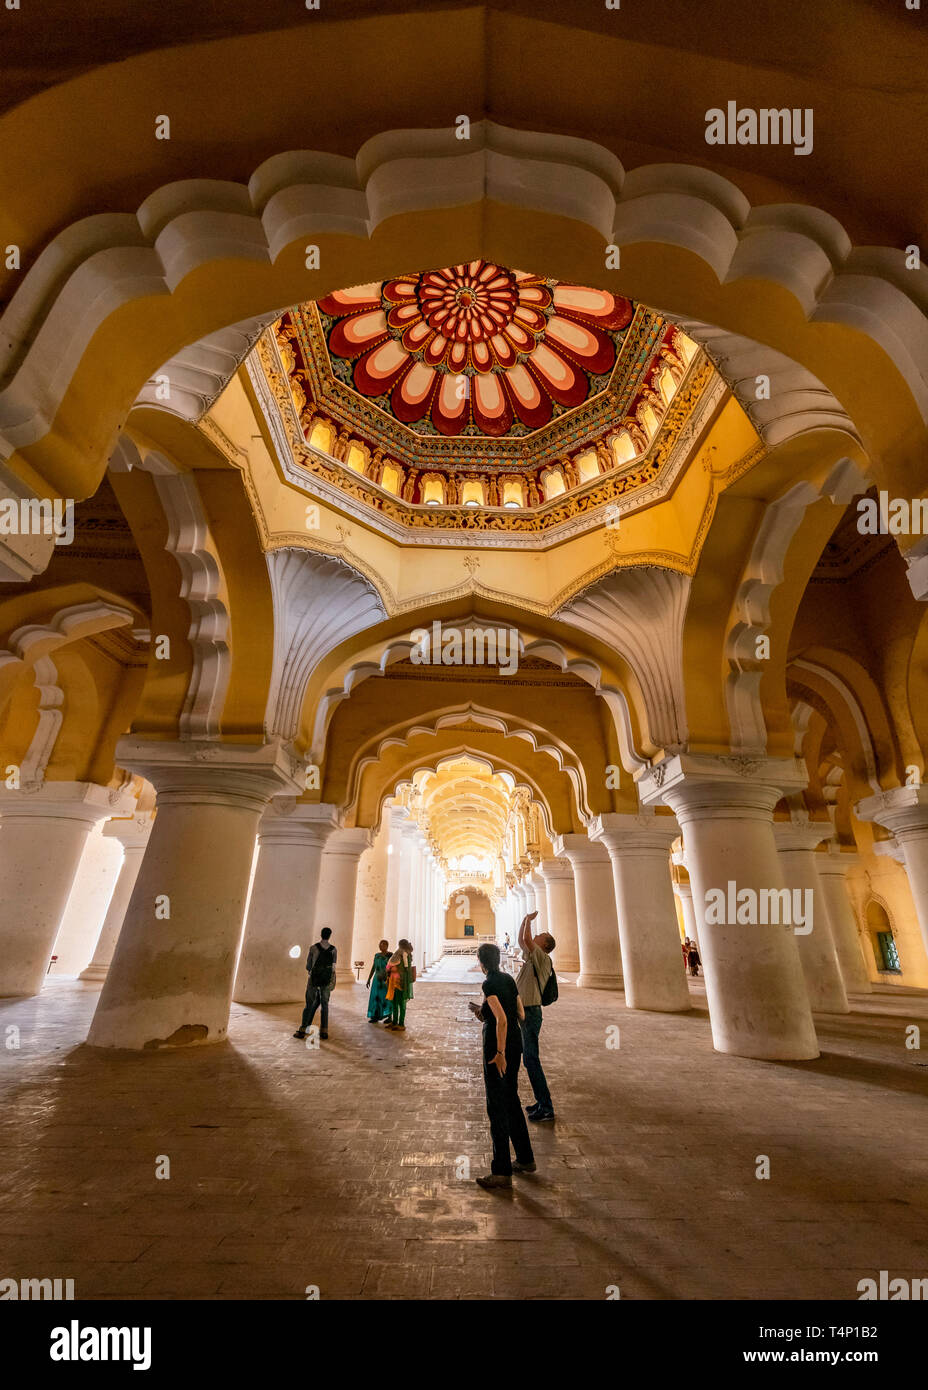 Vertical view of the amazing domed ceiling at the Thirumalai Nayak Palace in Madurai, India. Stock Photo